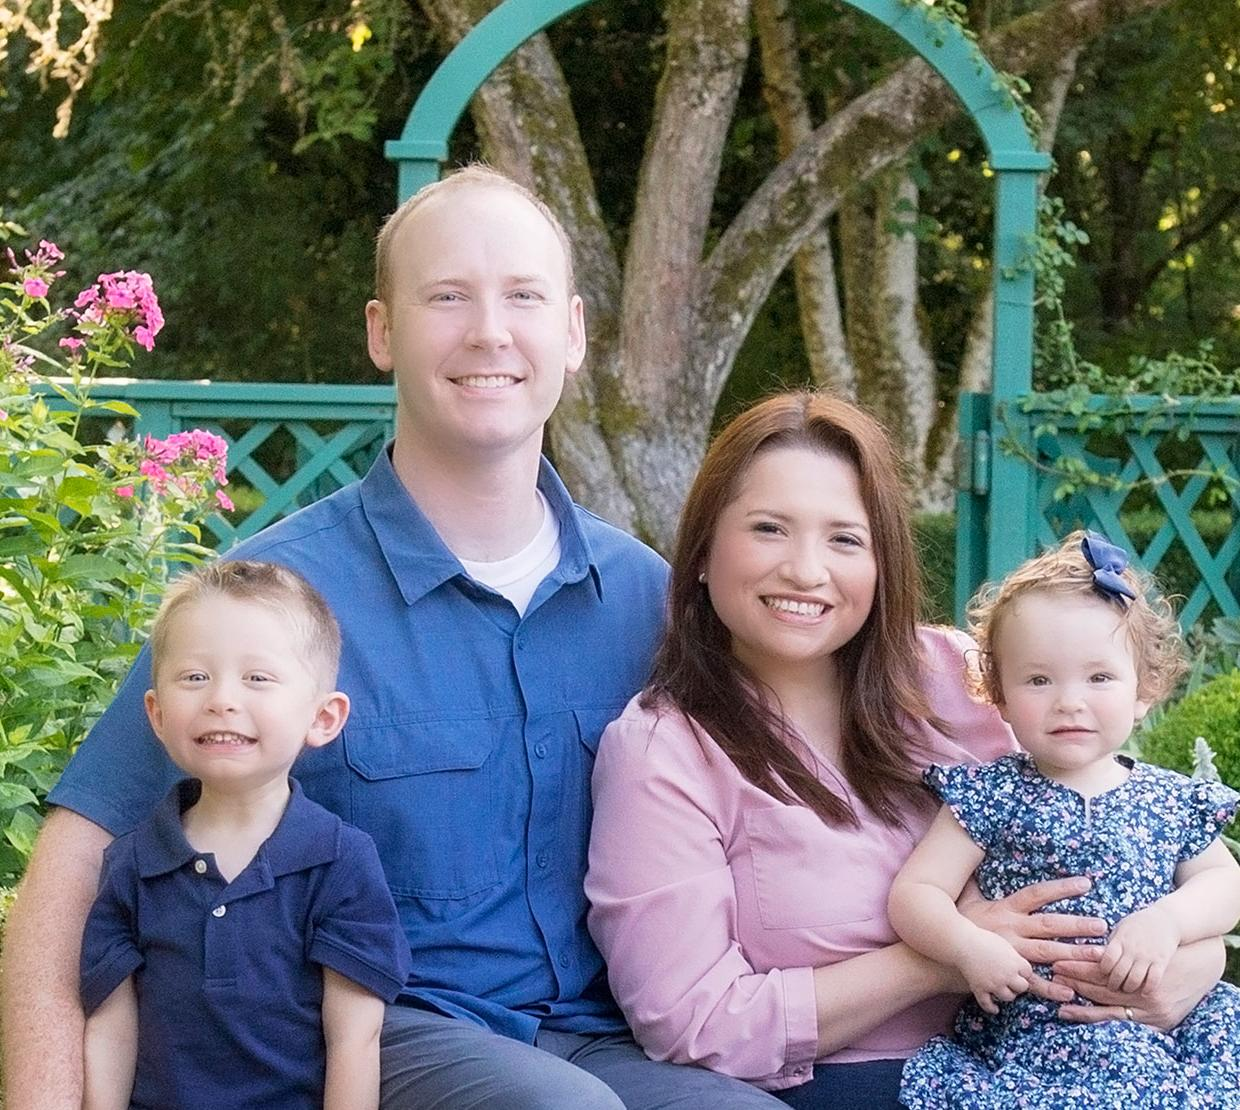 Drs. Luisa and Nathan Snyder with their children in garden